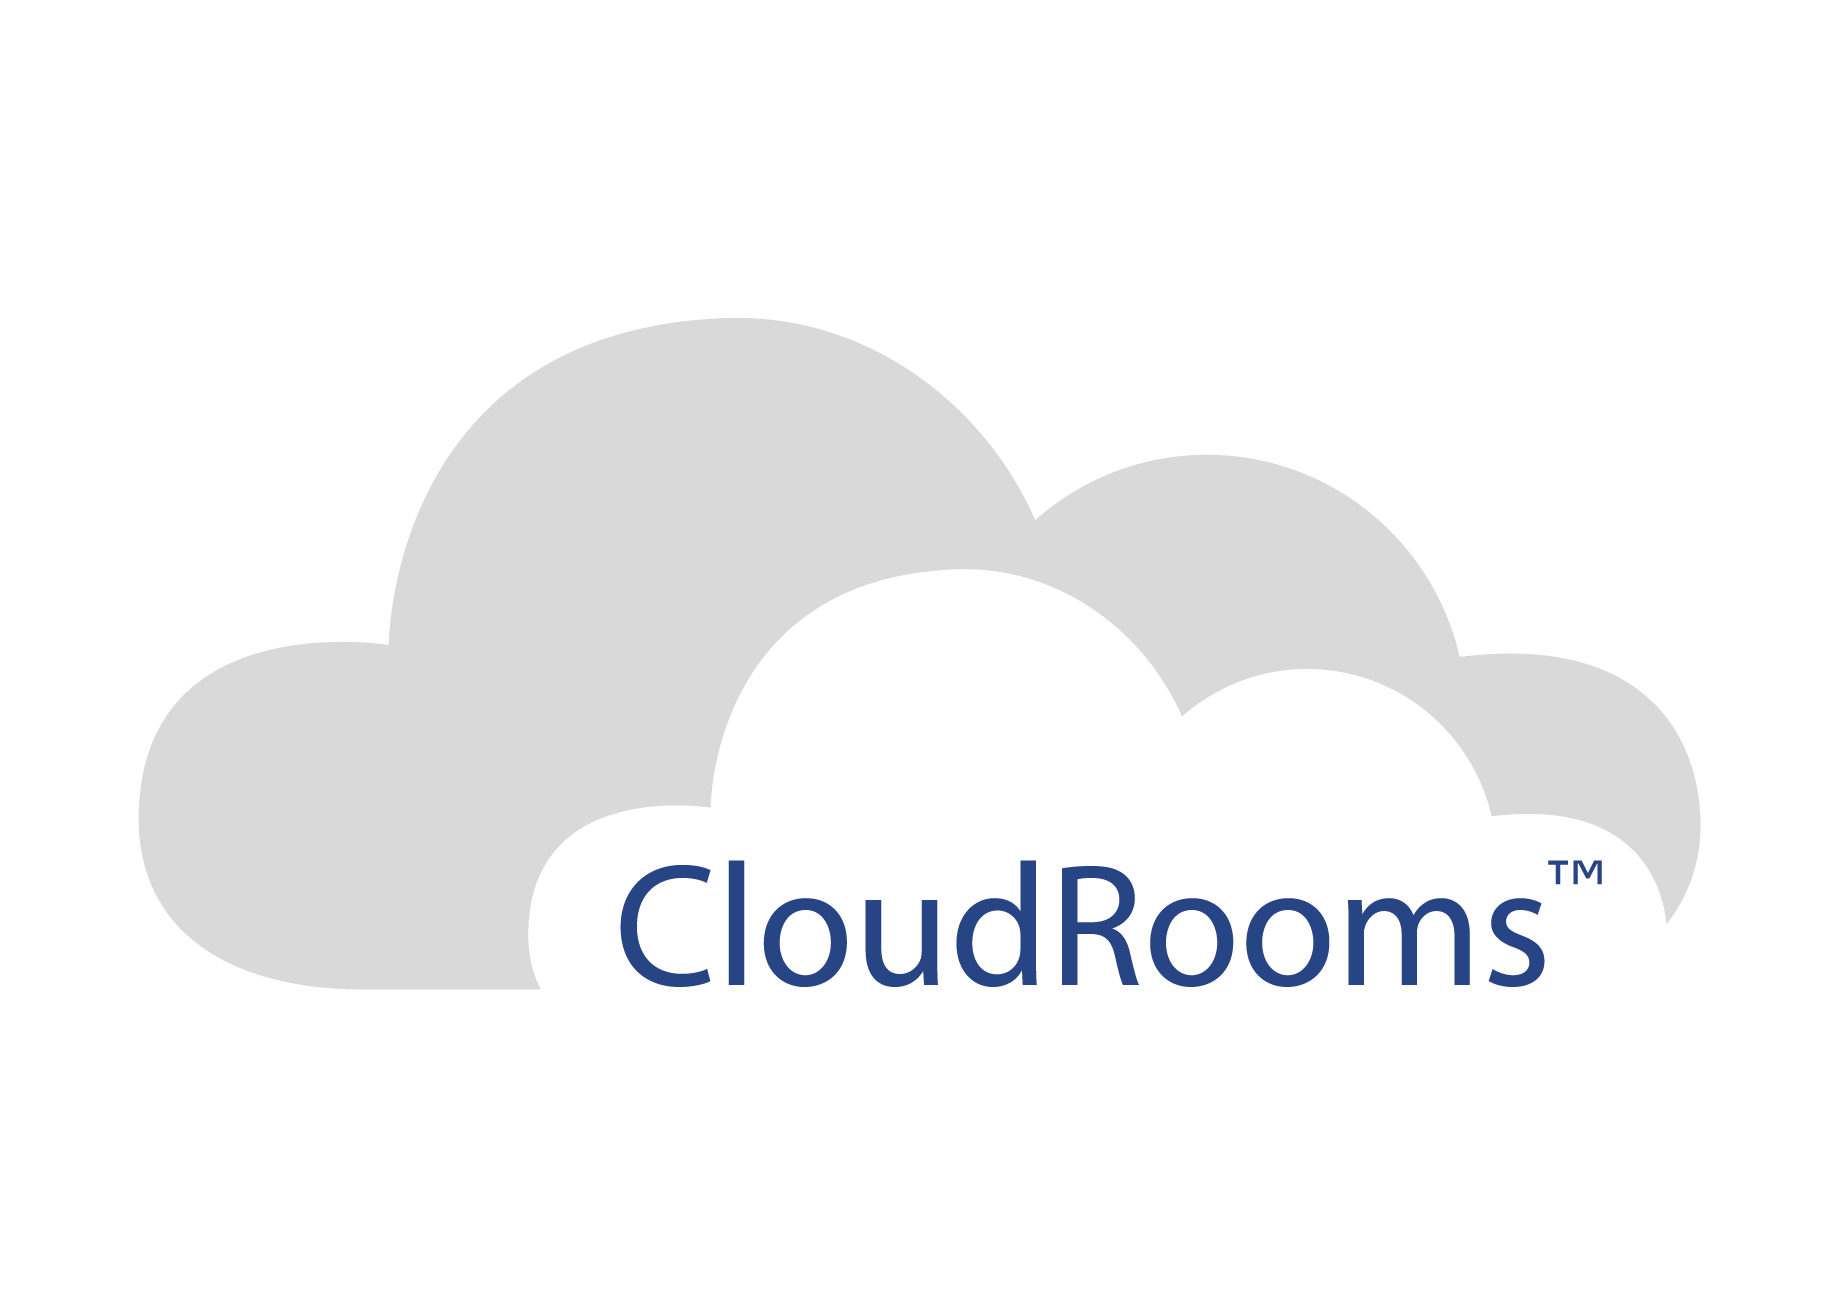 CloudRooms logo